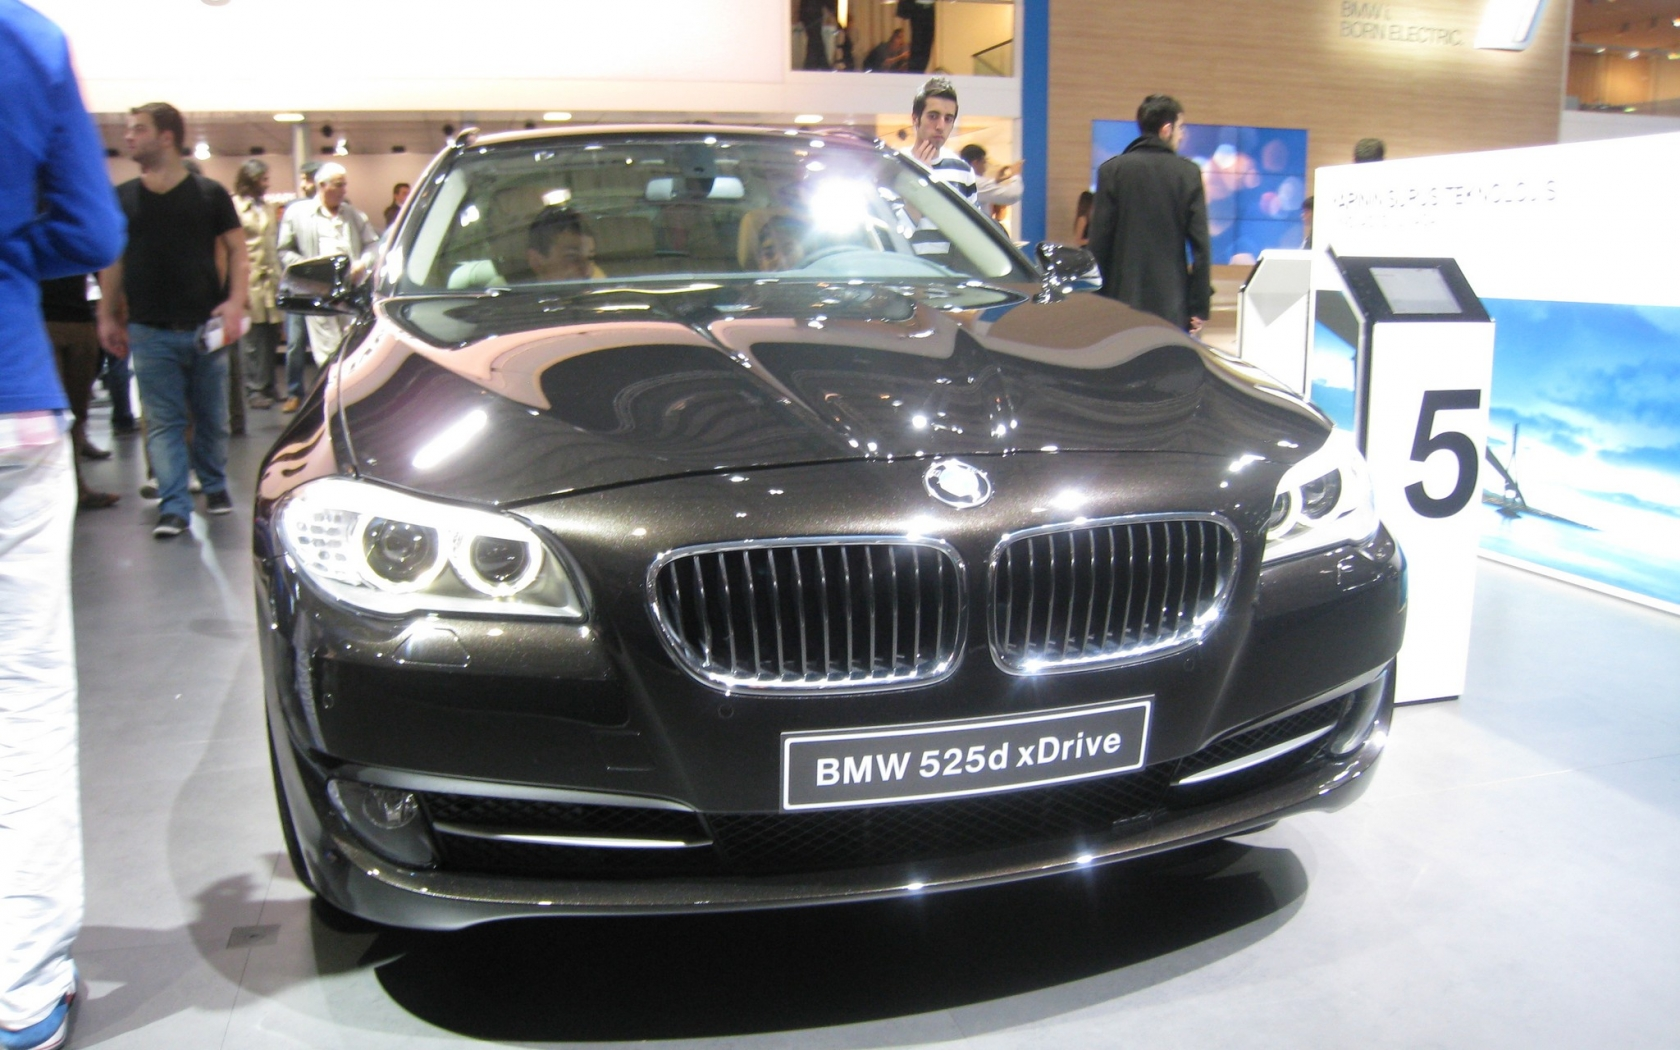 Bmw | 525d xDrive 2013 Black - ( 1680x1050 )